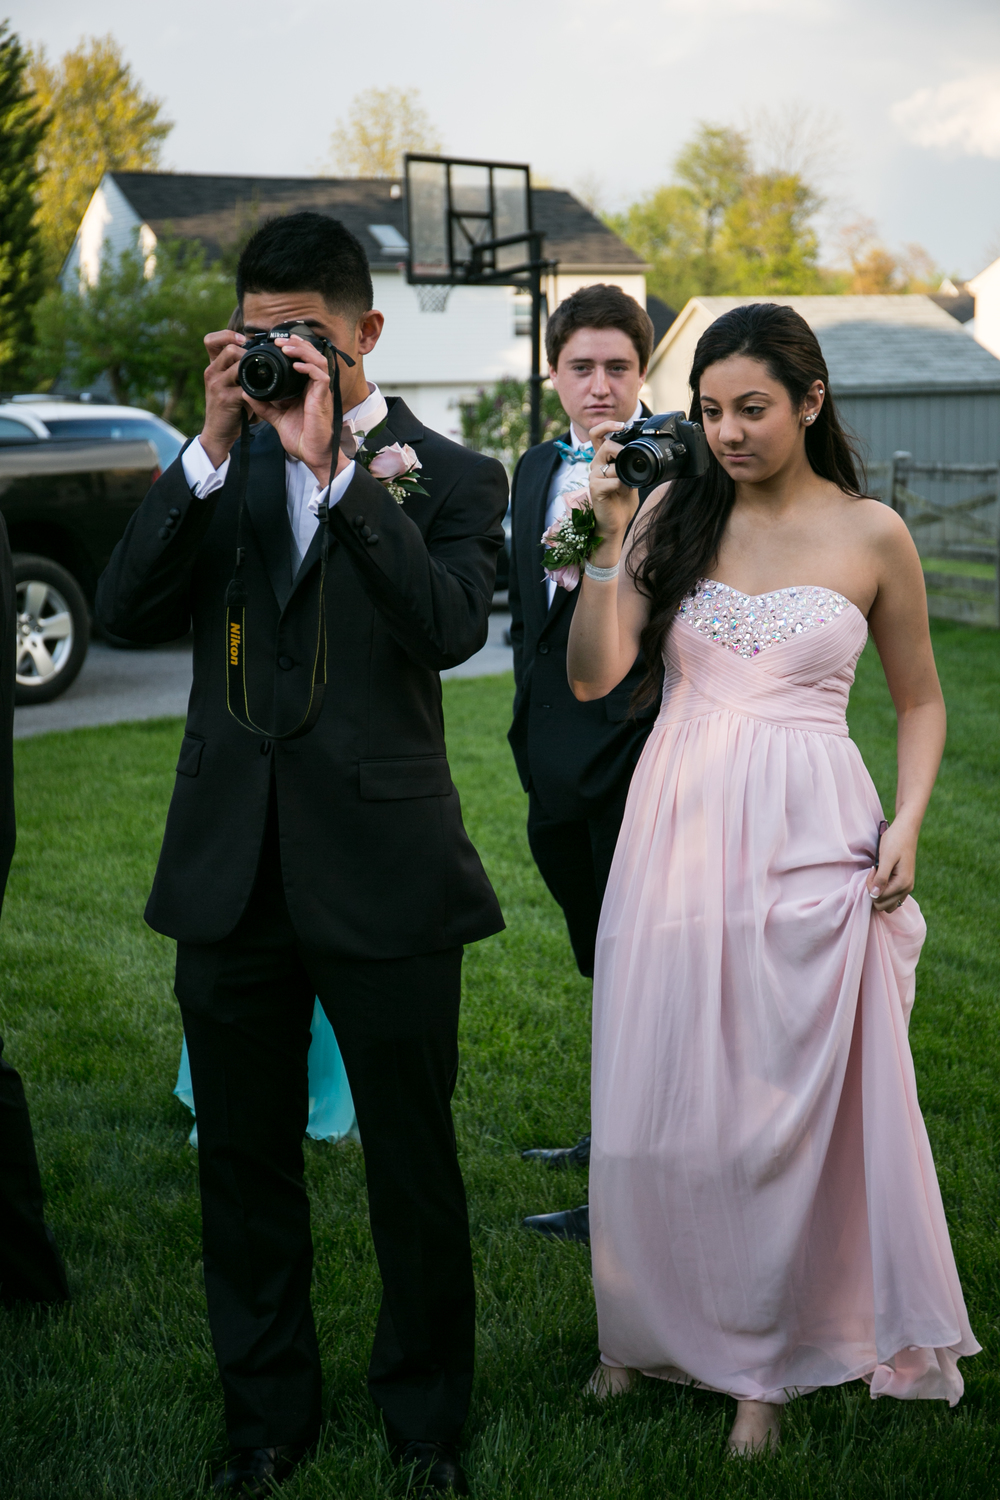 Mount-De-Sales-Pre-Prom-May-2014-80.jpg